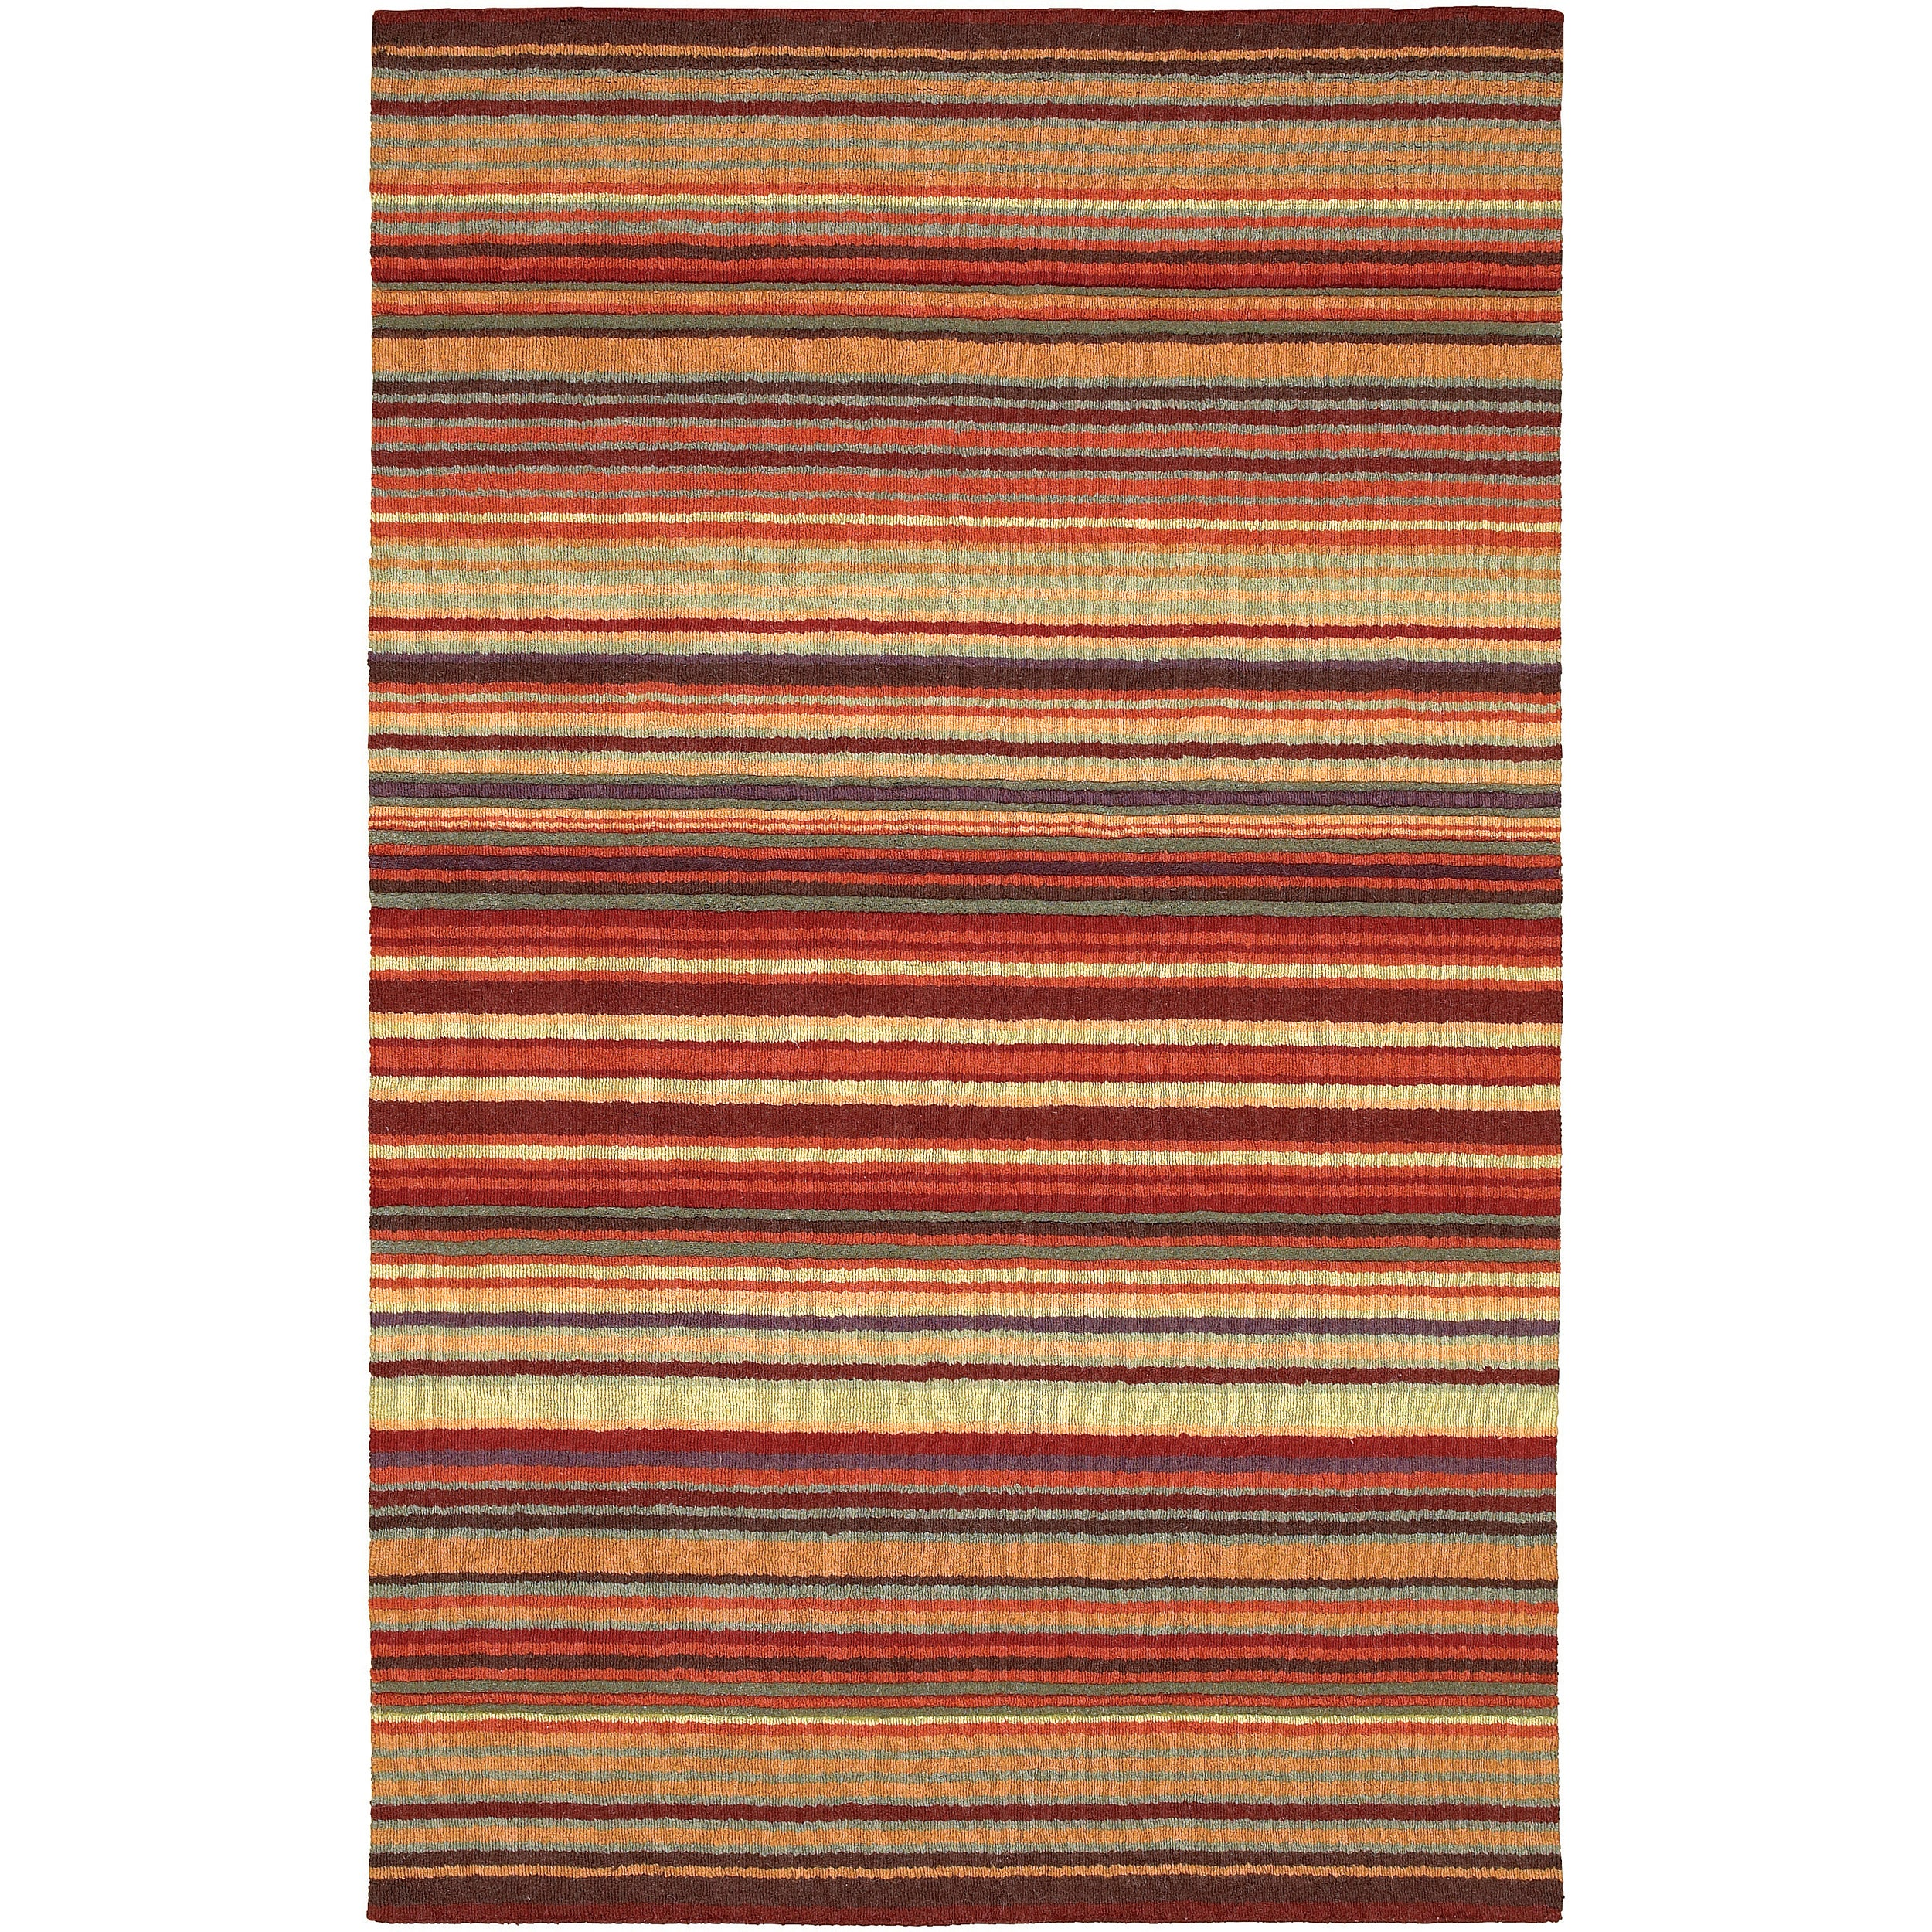 Plush Buffalo Plaid Rug: Hand-crafted Red Striped Casual Wool Cruiser Area Rug (9